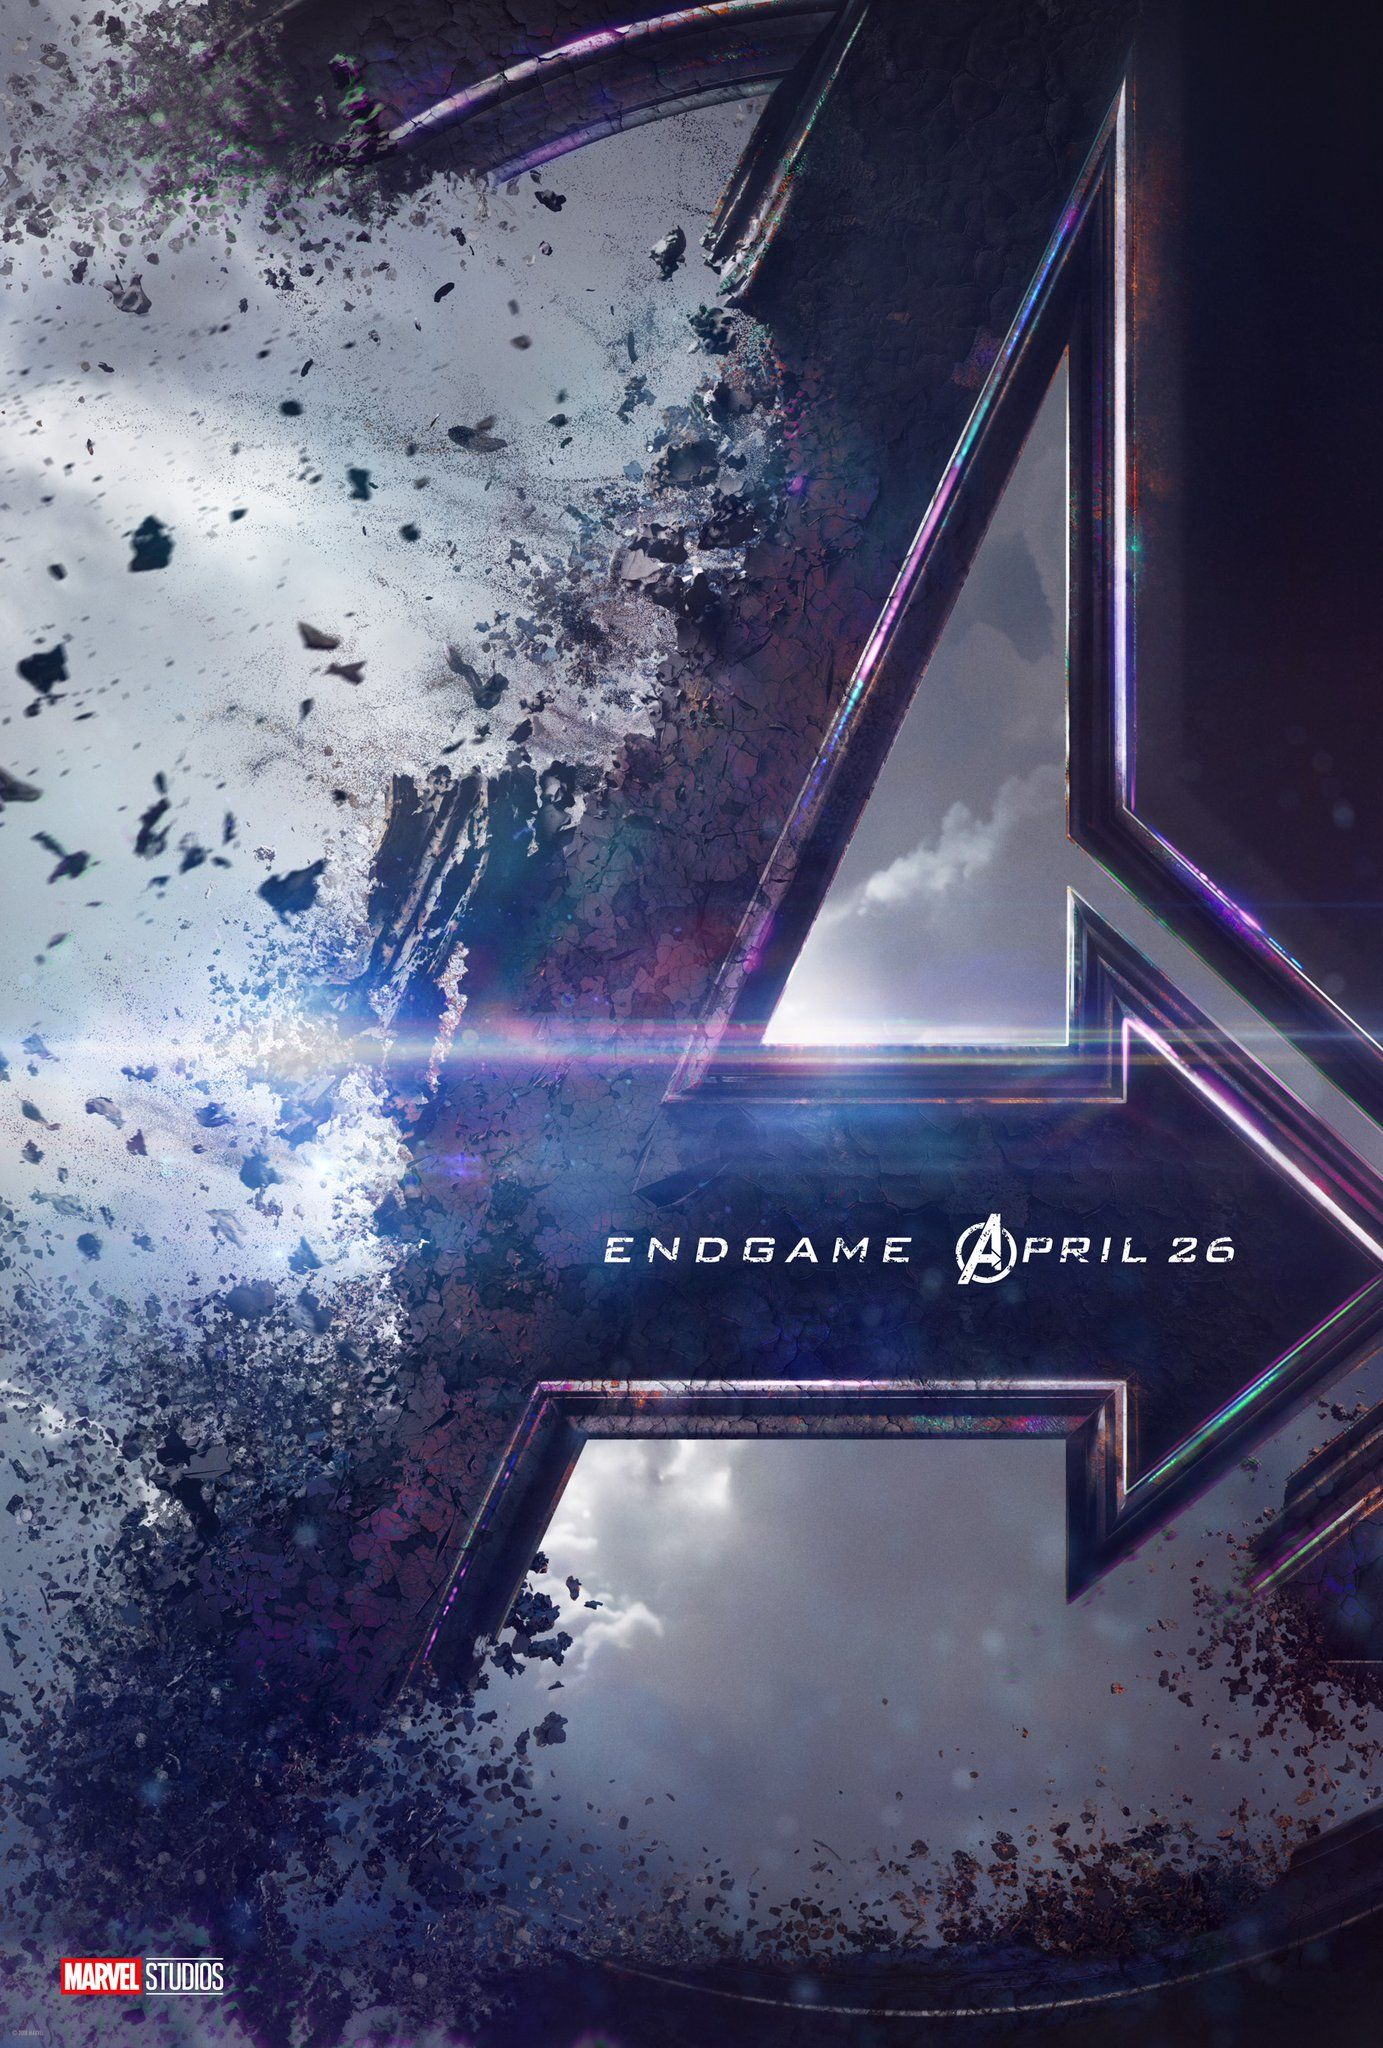 Avengers: Endgame wallpaper 4K to download for mobile